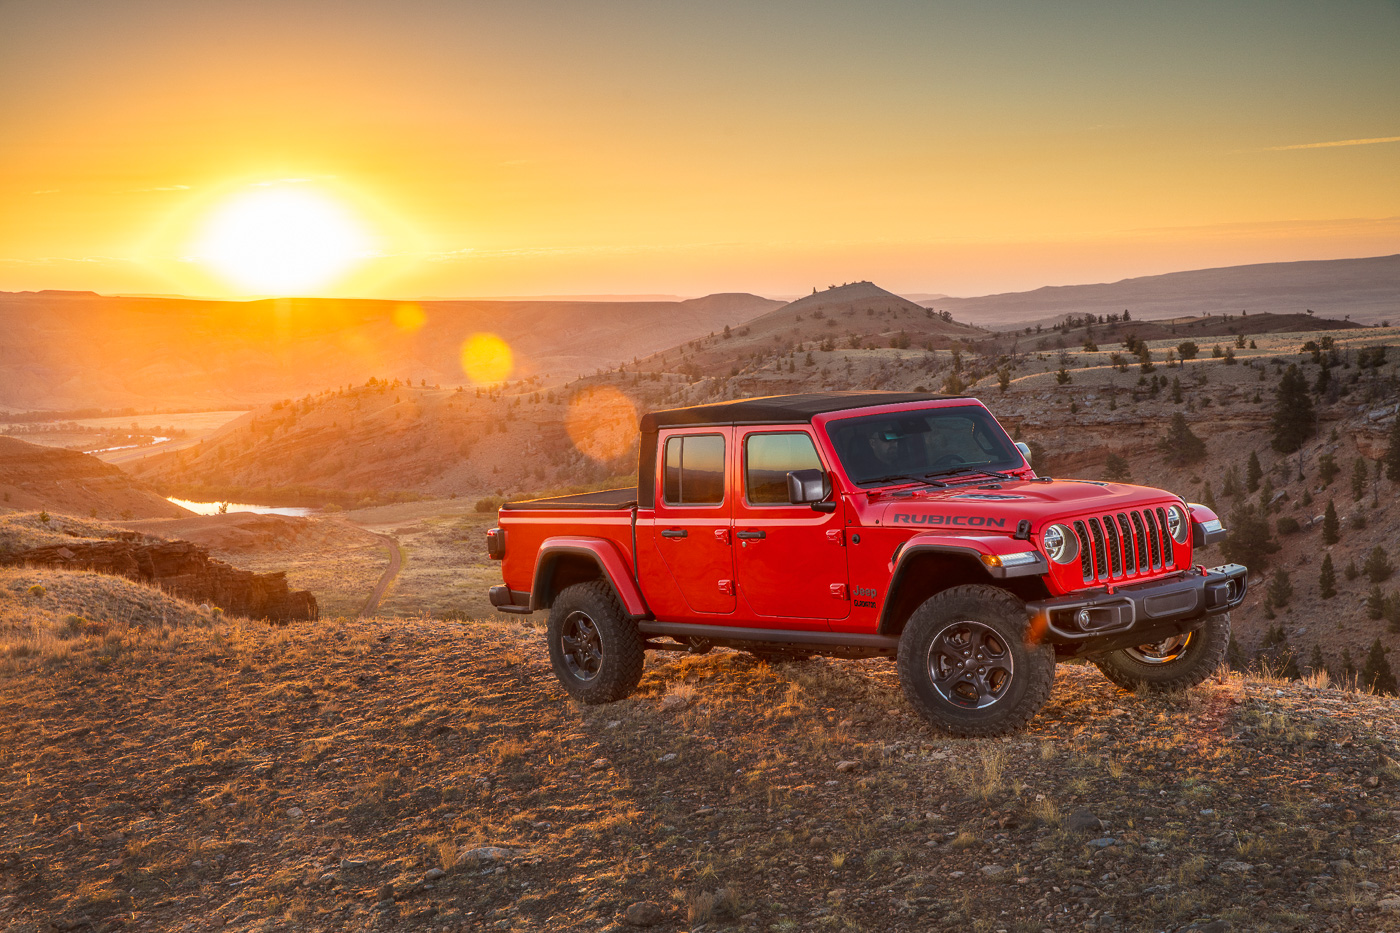 Jeep-Gladiator-Rubicon-78.jpg